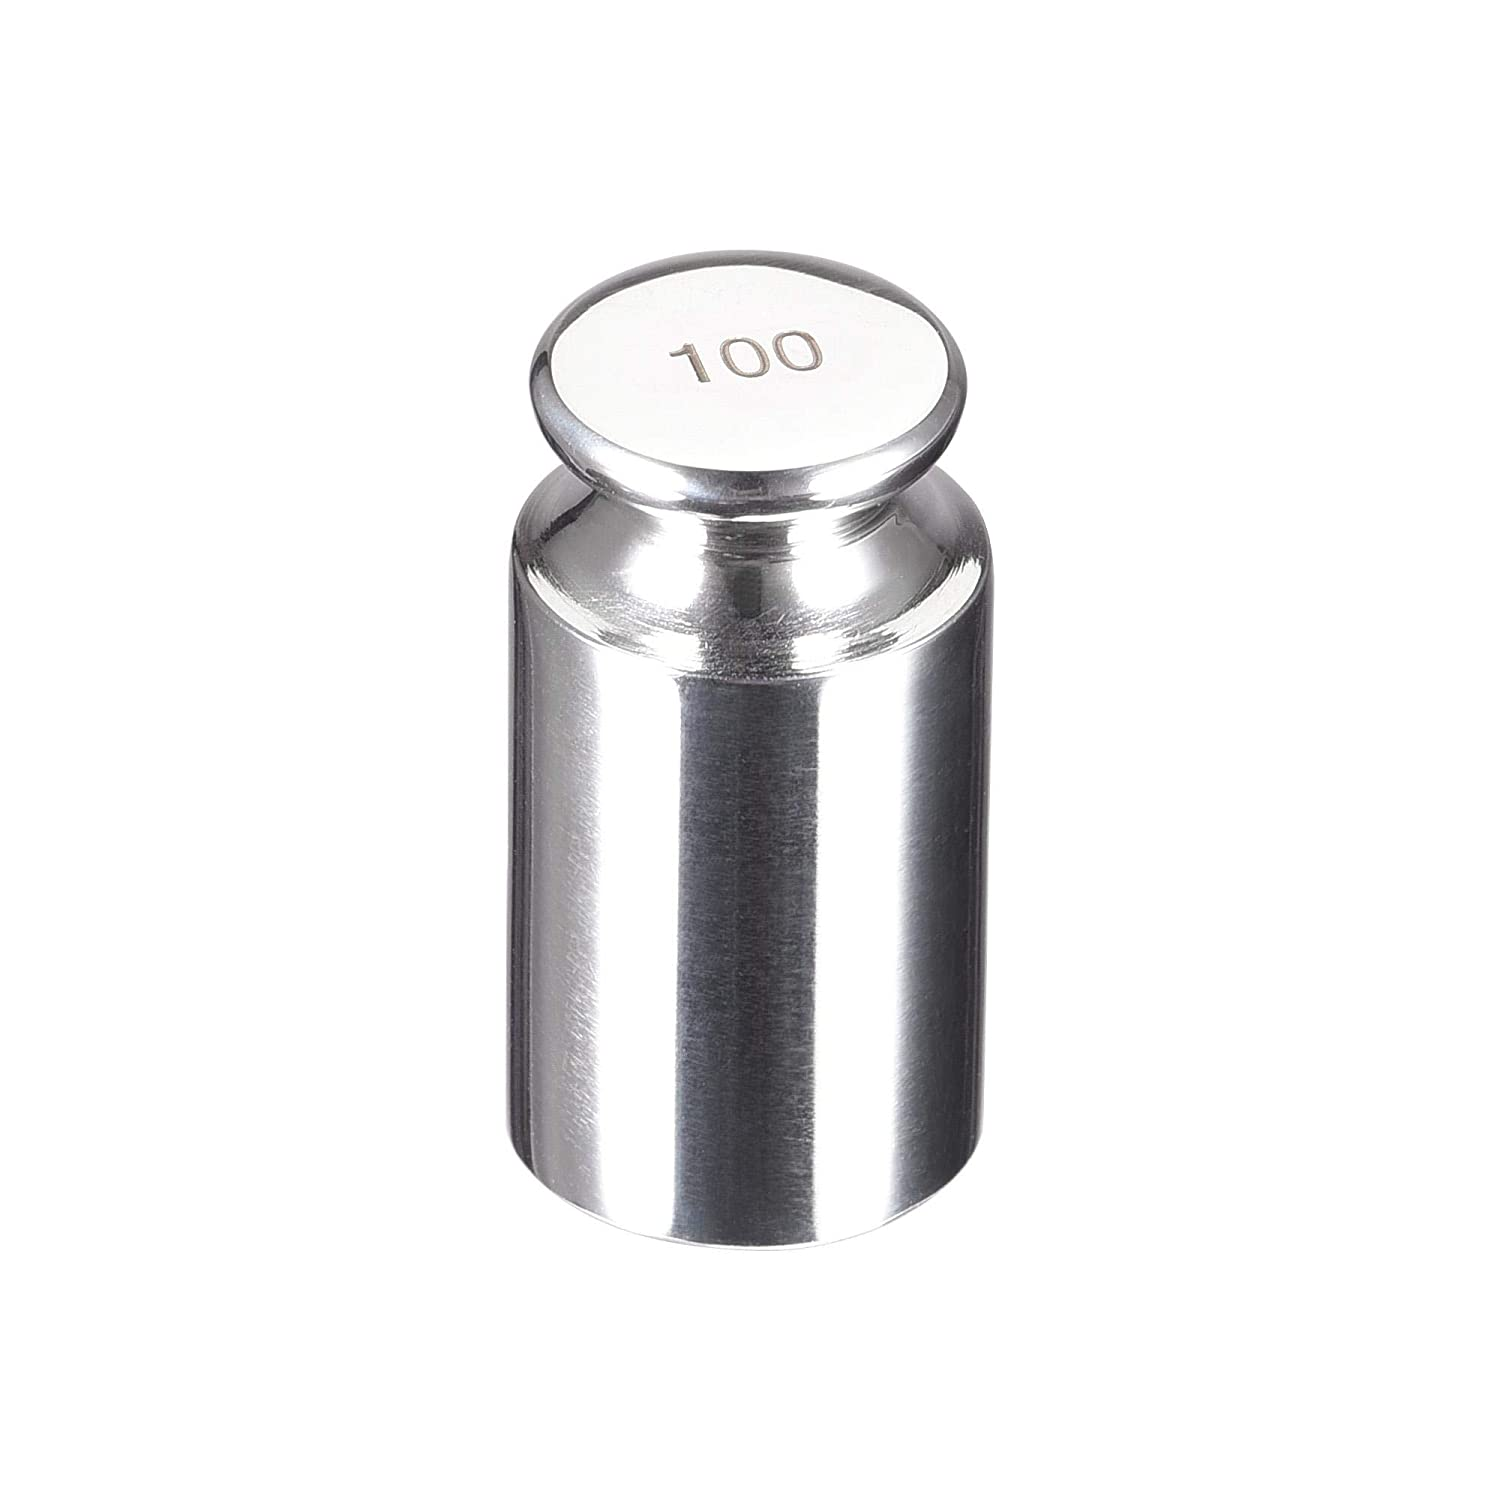 uxcell Gram Calibration Weight 100g F1 Fresno Mall Steel Precision price Stainless